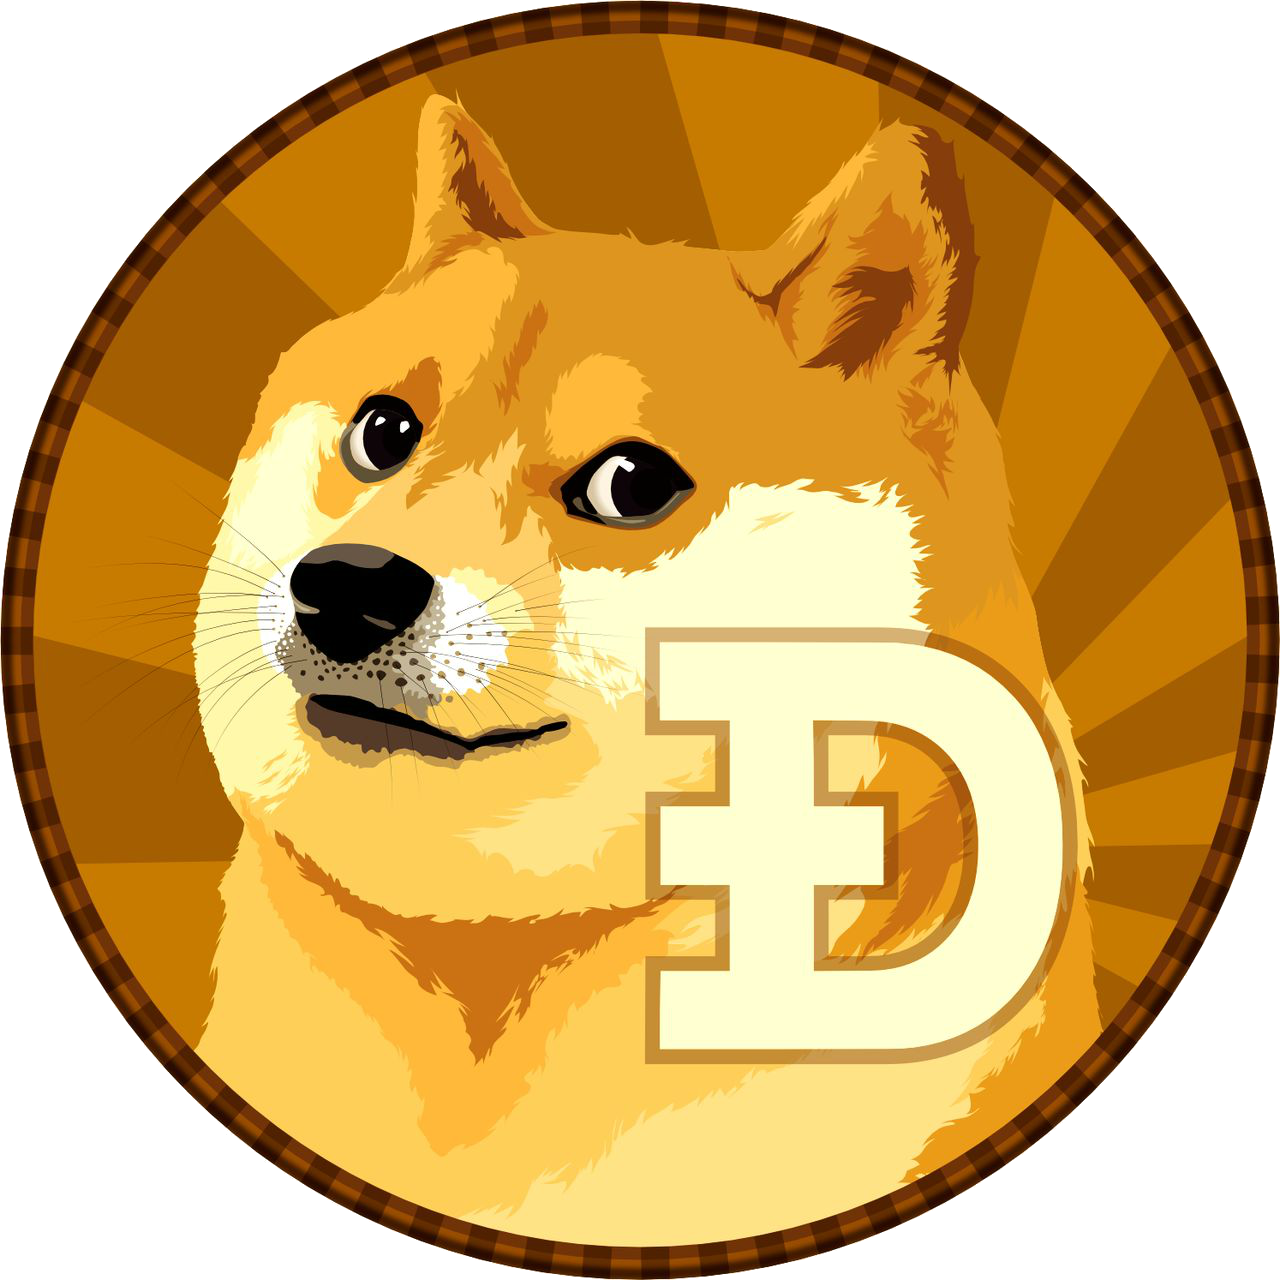 Shiba Inu Doge Bitcoin Cryptocurrency Dogecoin PNG Image